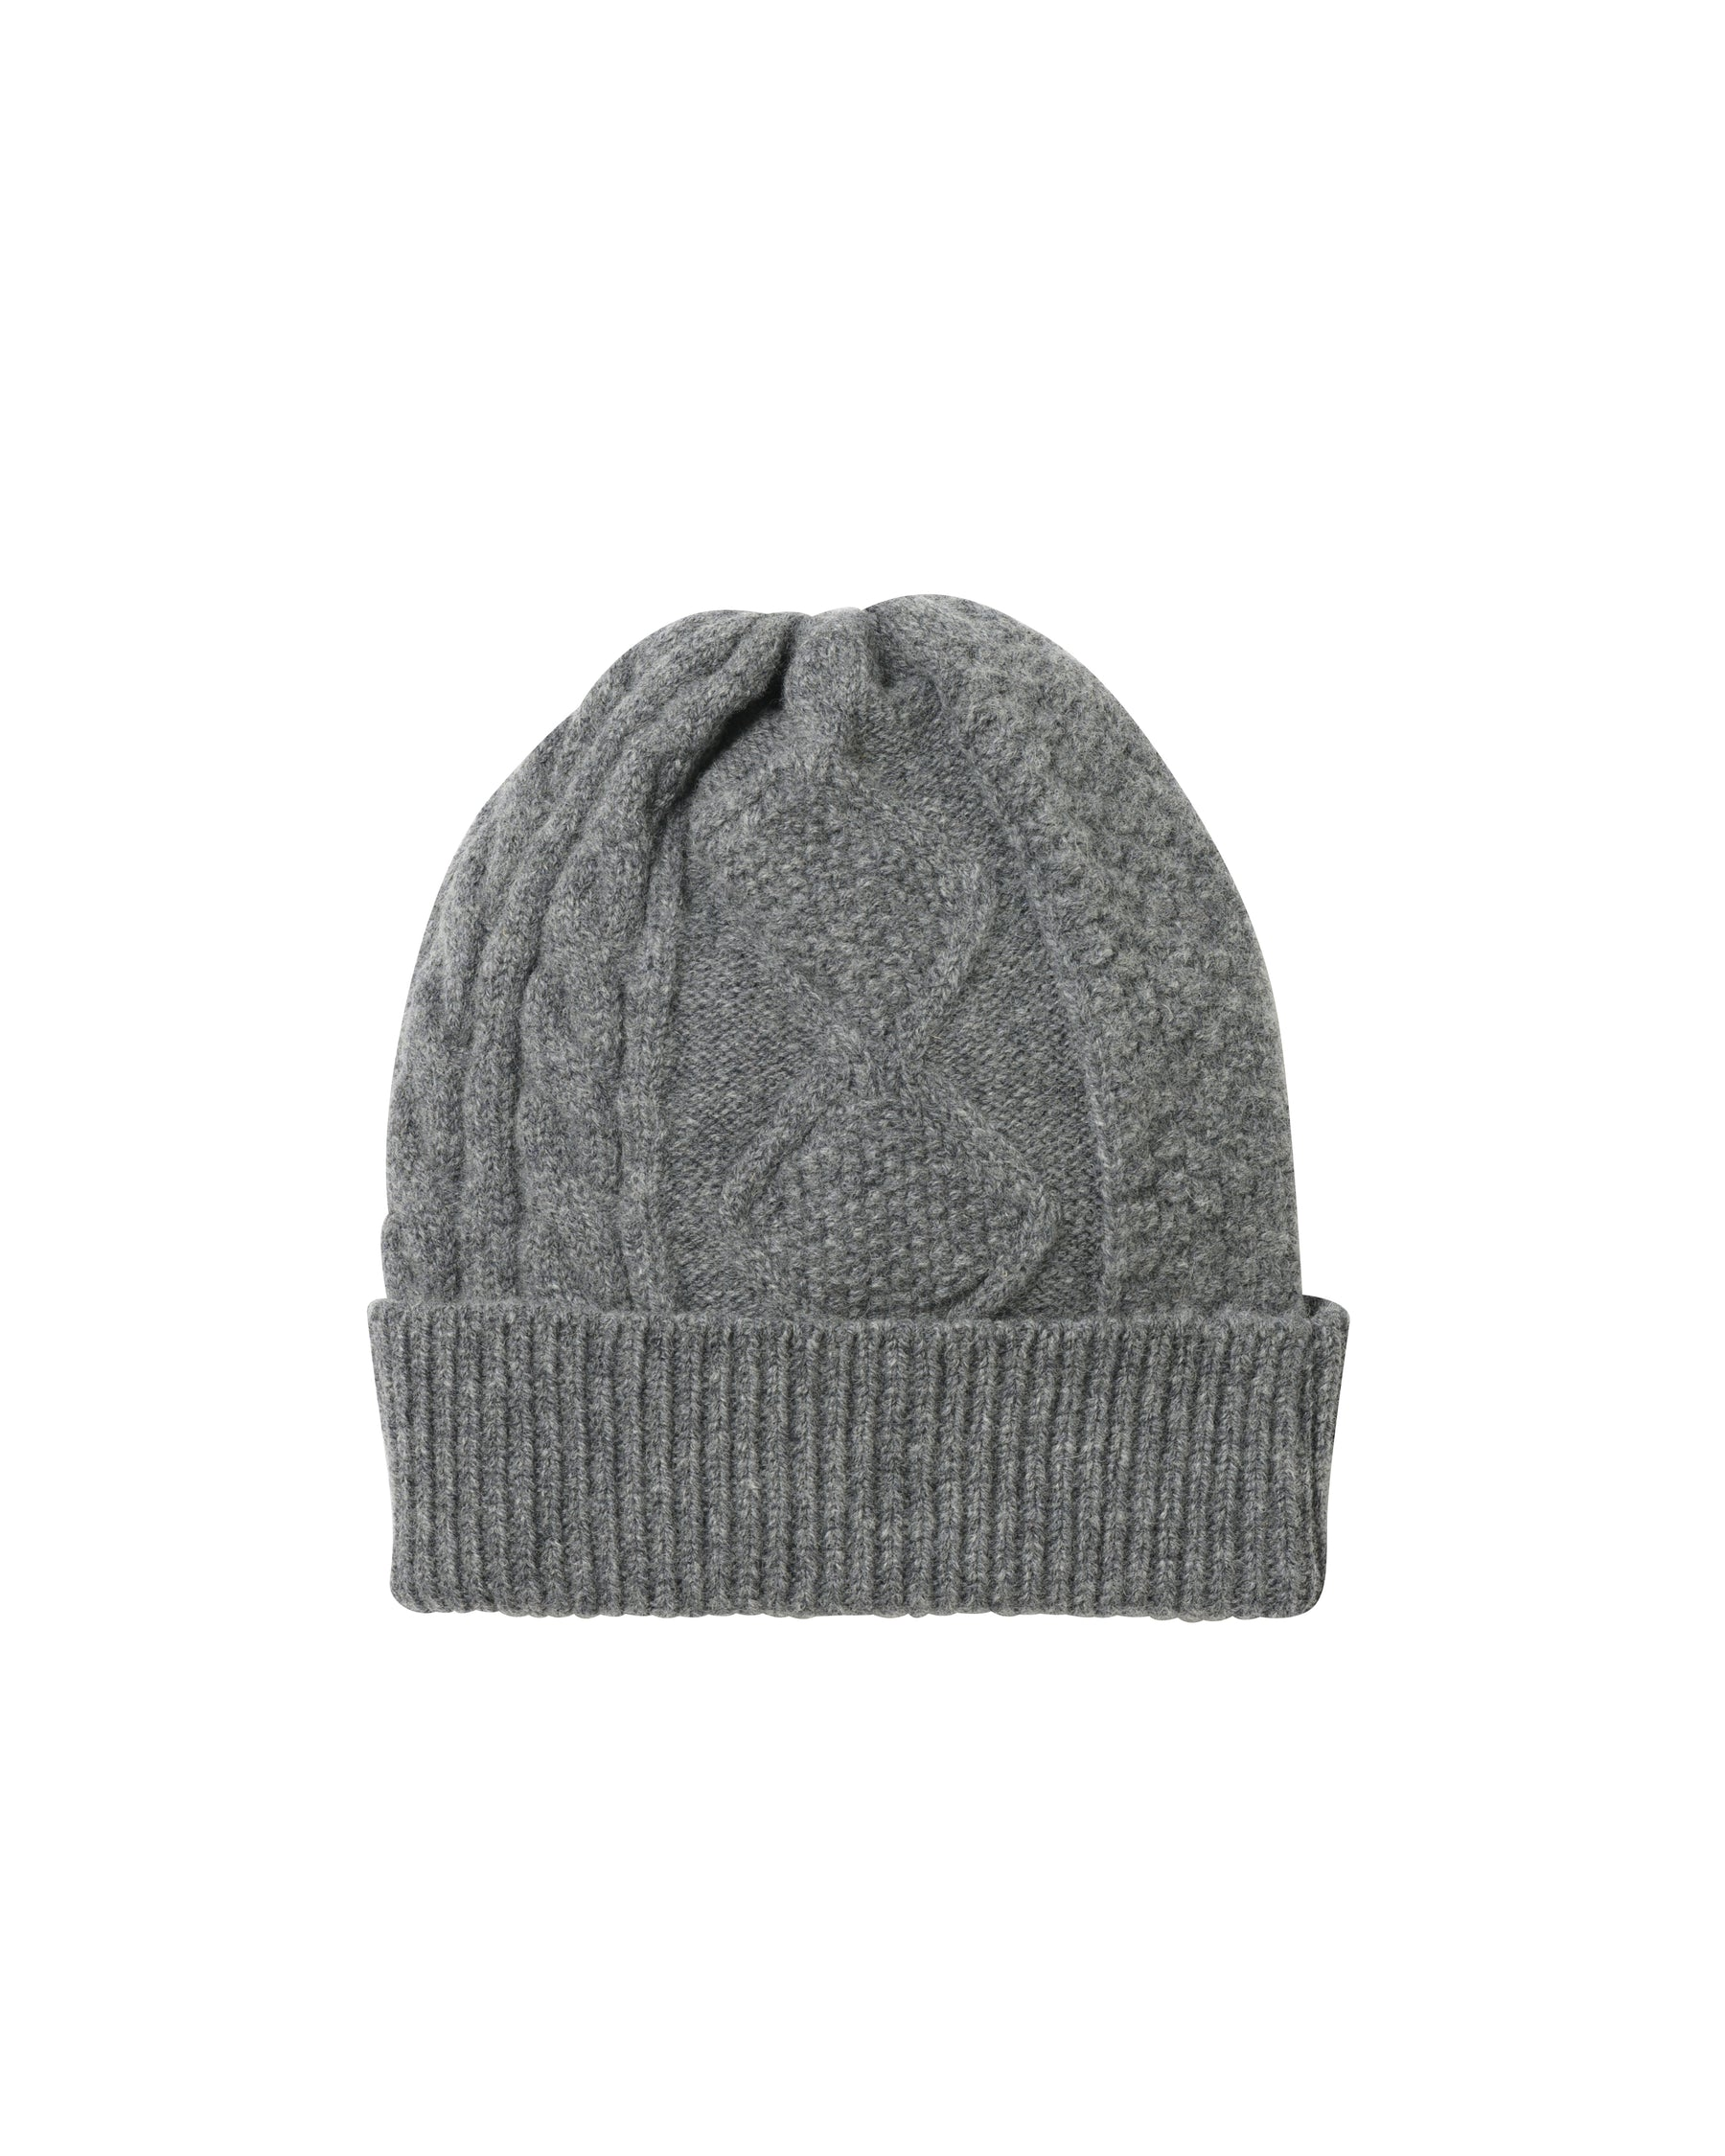 Bergdorf Goodman x C.O.O • Cableknit Watch Cap • Light Grey